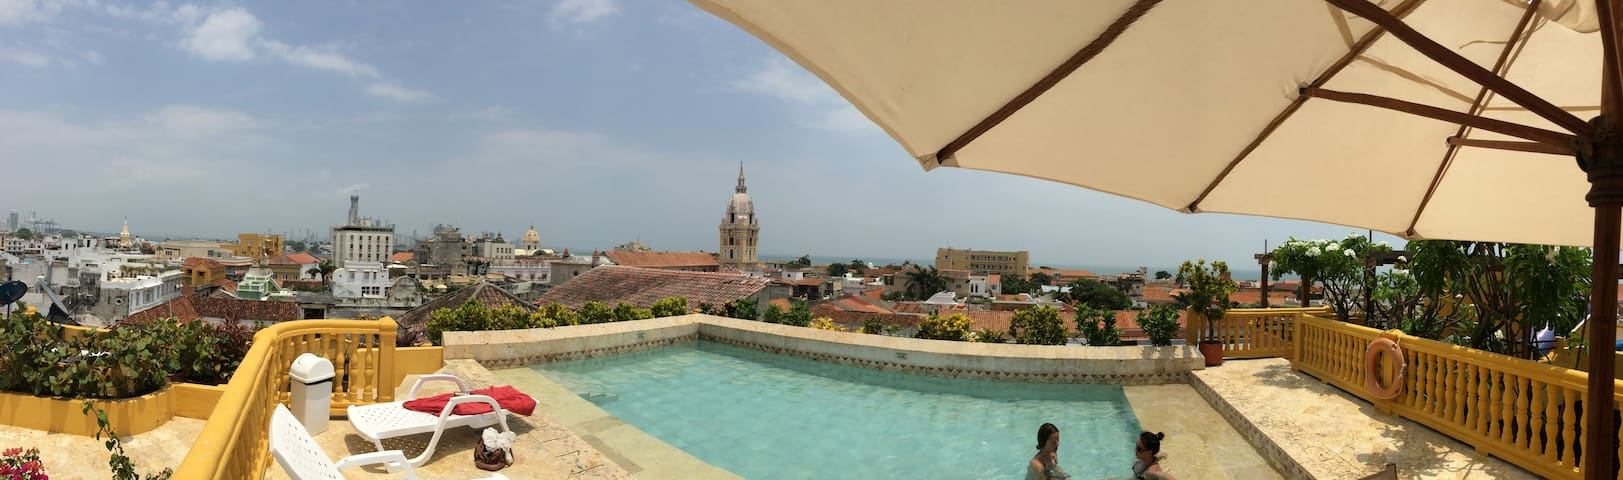 2 Bedroom Apartment in Historical Center Cartagena - Cartagena - Apartmen